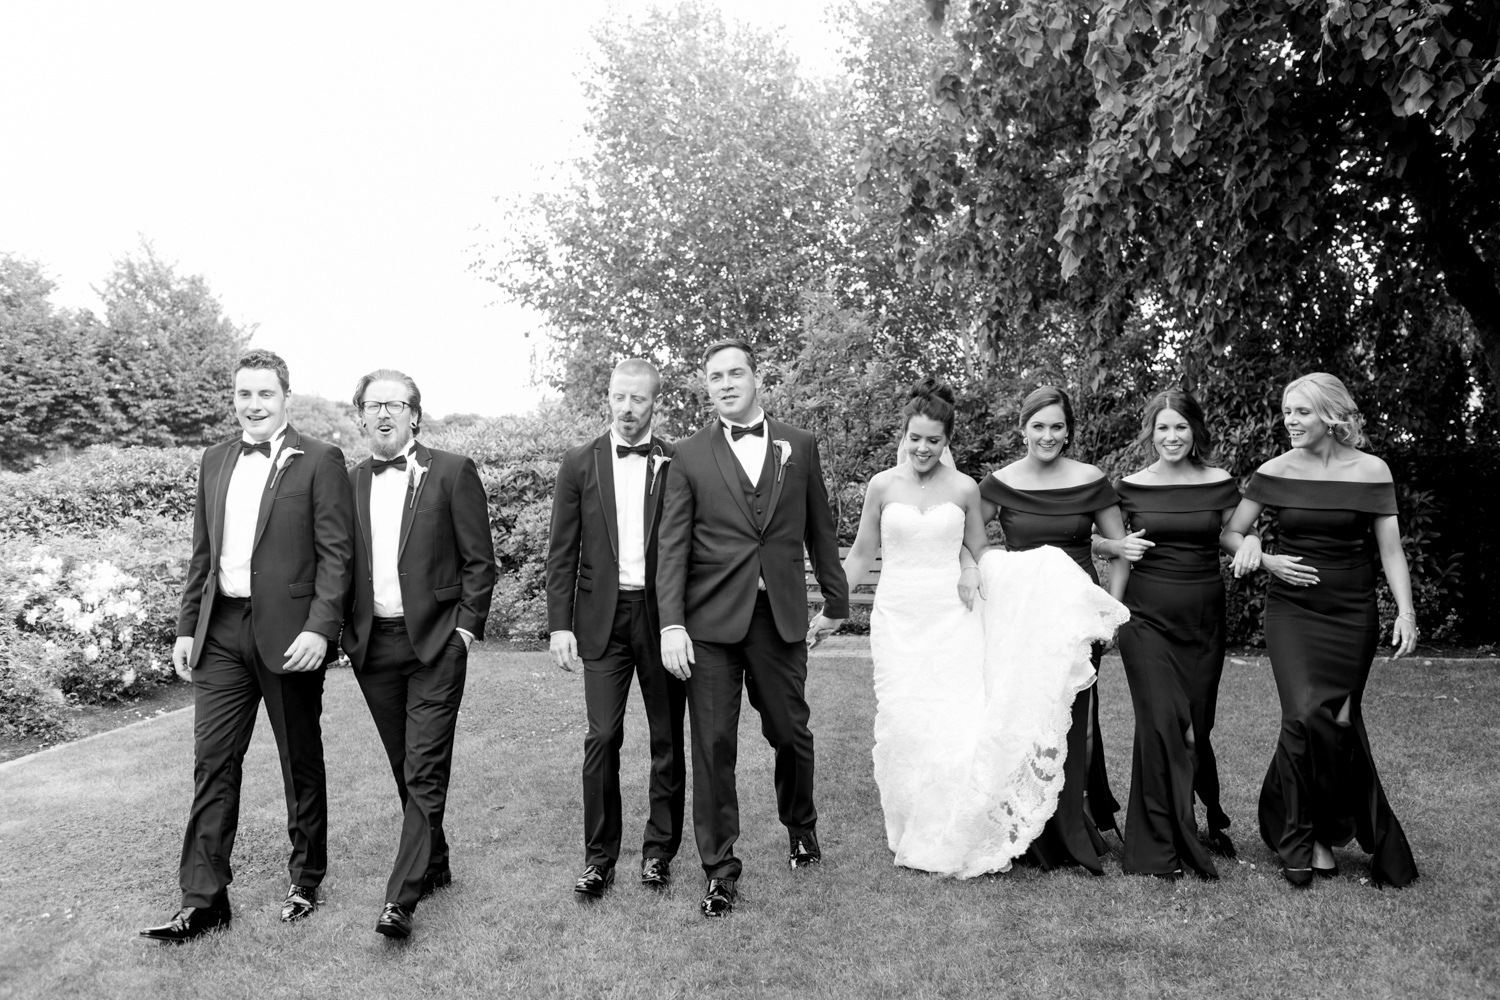 bride and groom with his groomsmen in black tux suits and bridesmaids in black long dresses